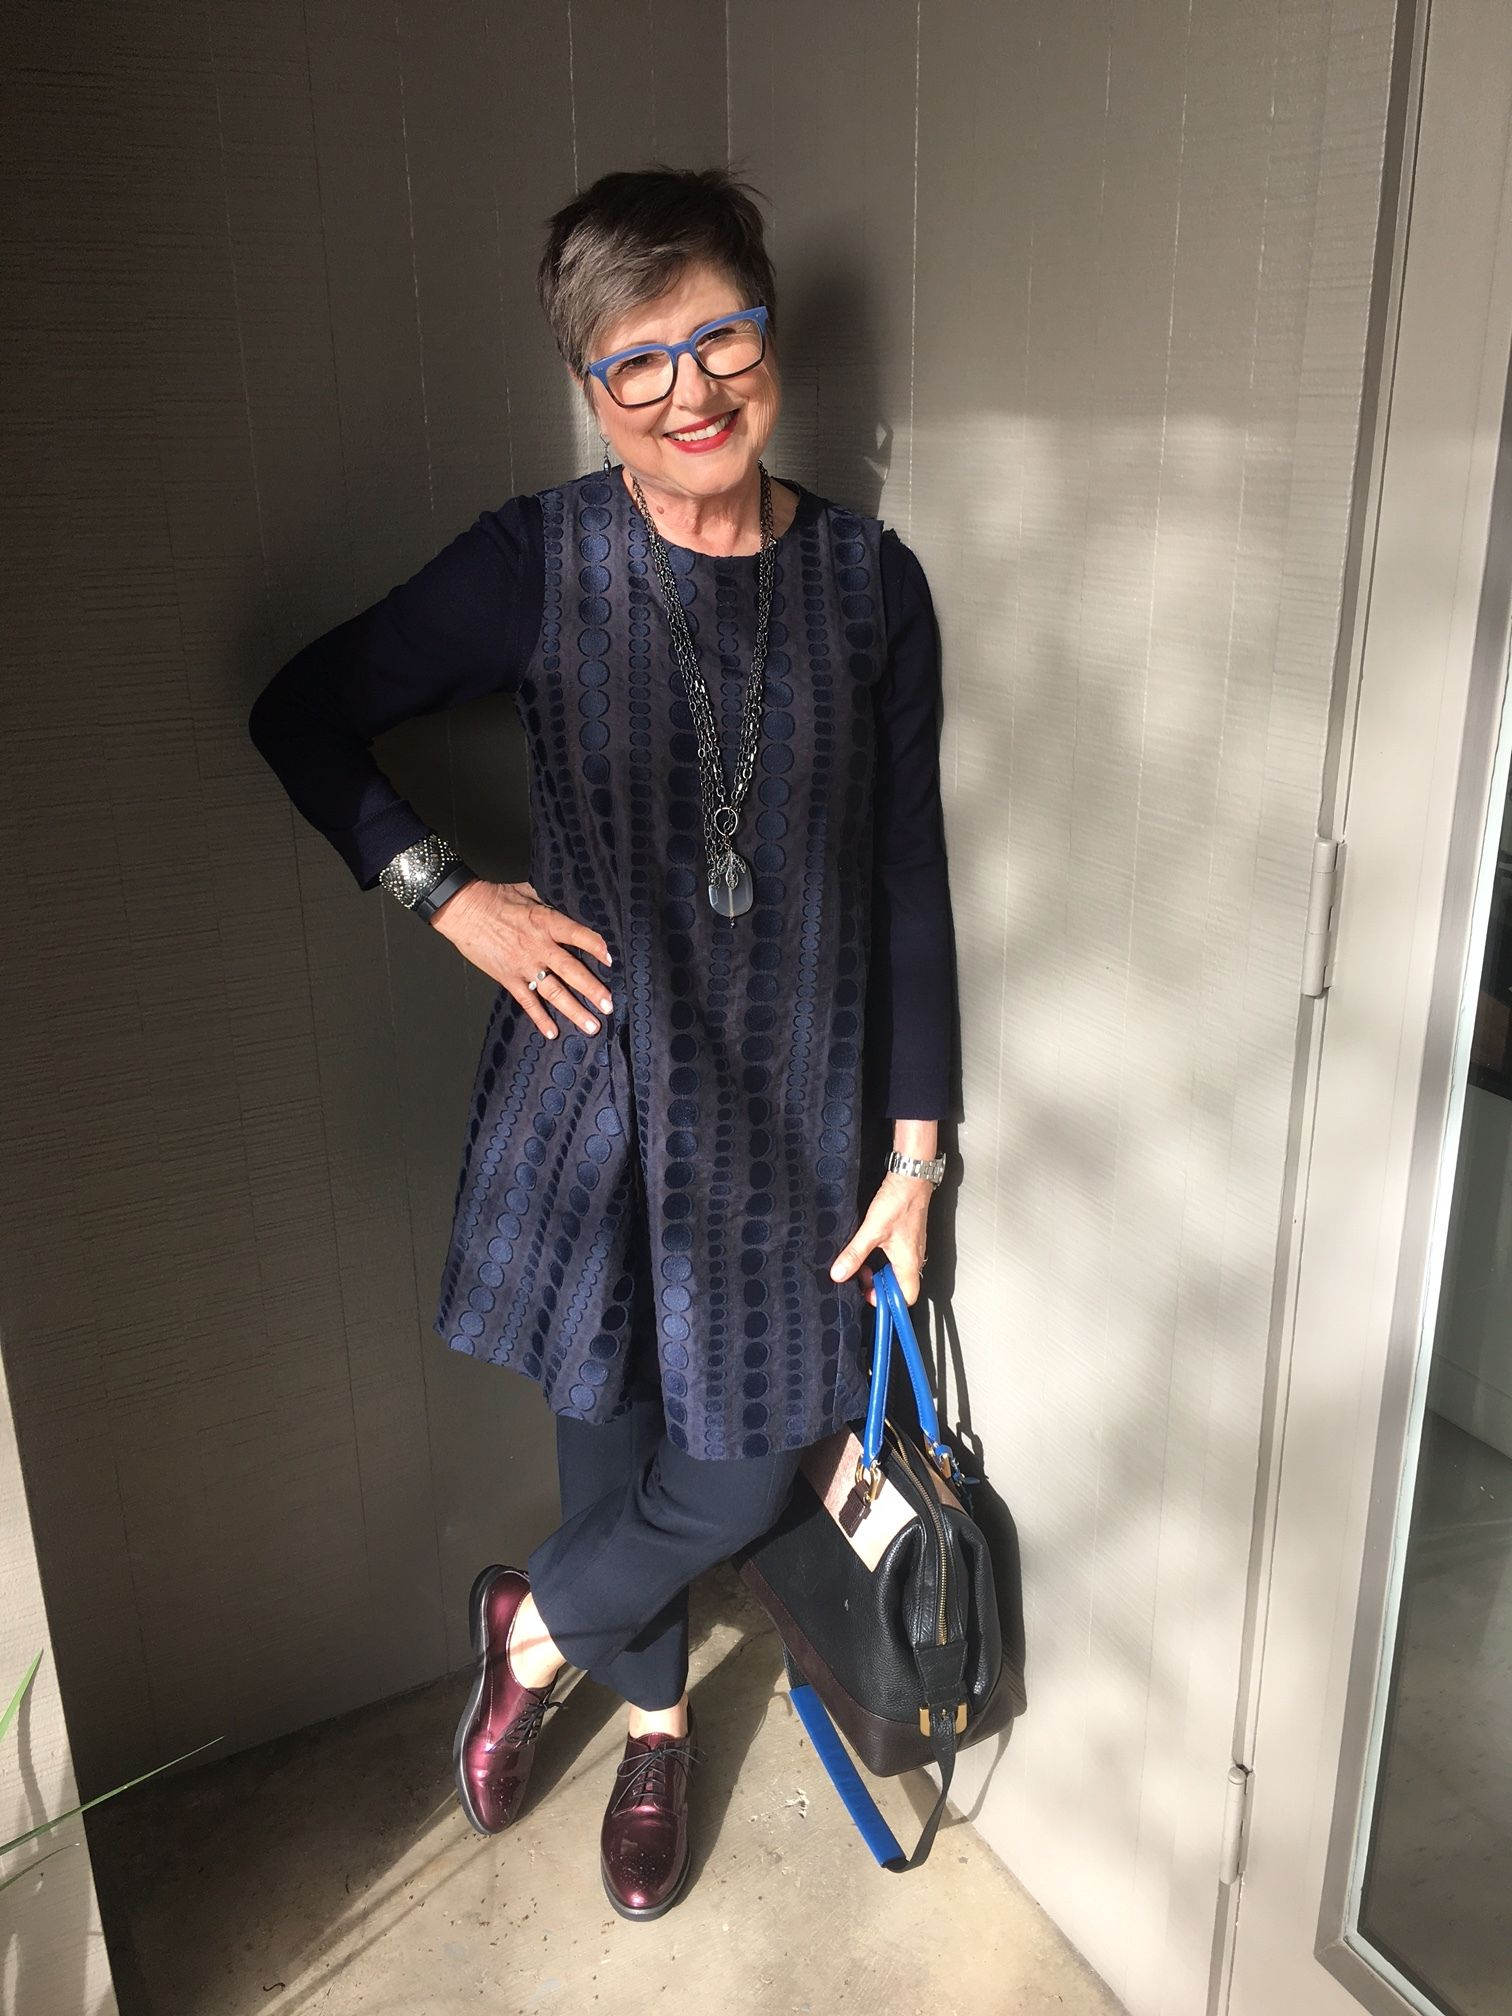 Over 60 and Answering Questions on Aging   Blue polka dots  Fashion     I invite you to look inside the soul of your fashion and style and answer  these questions on aging  What do you like about it  What challenges you